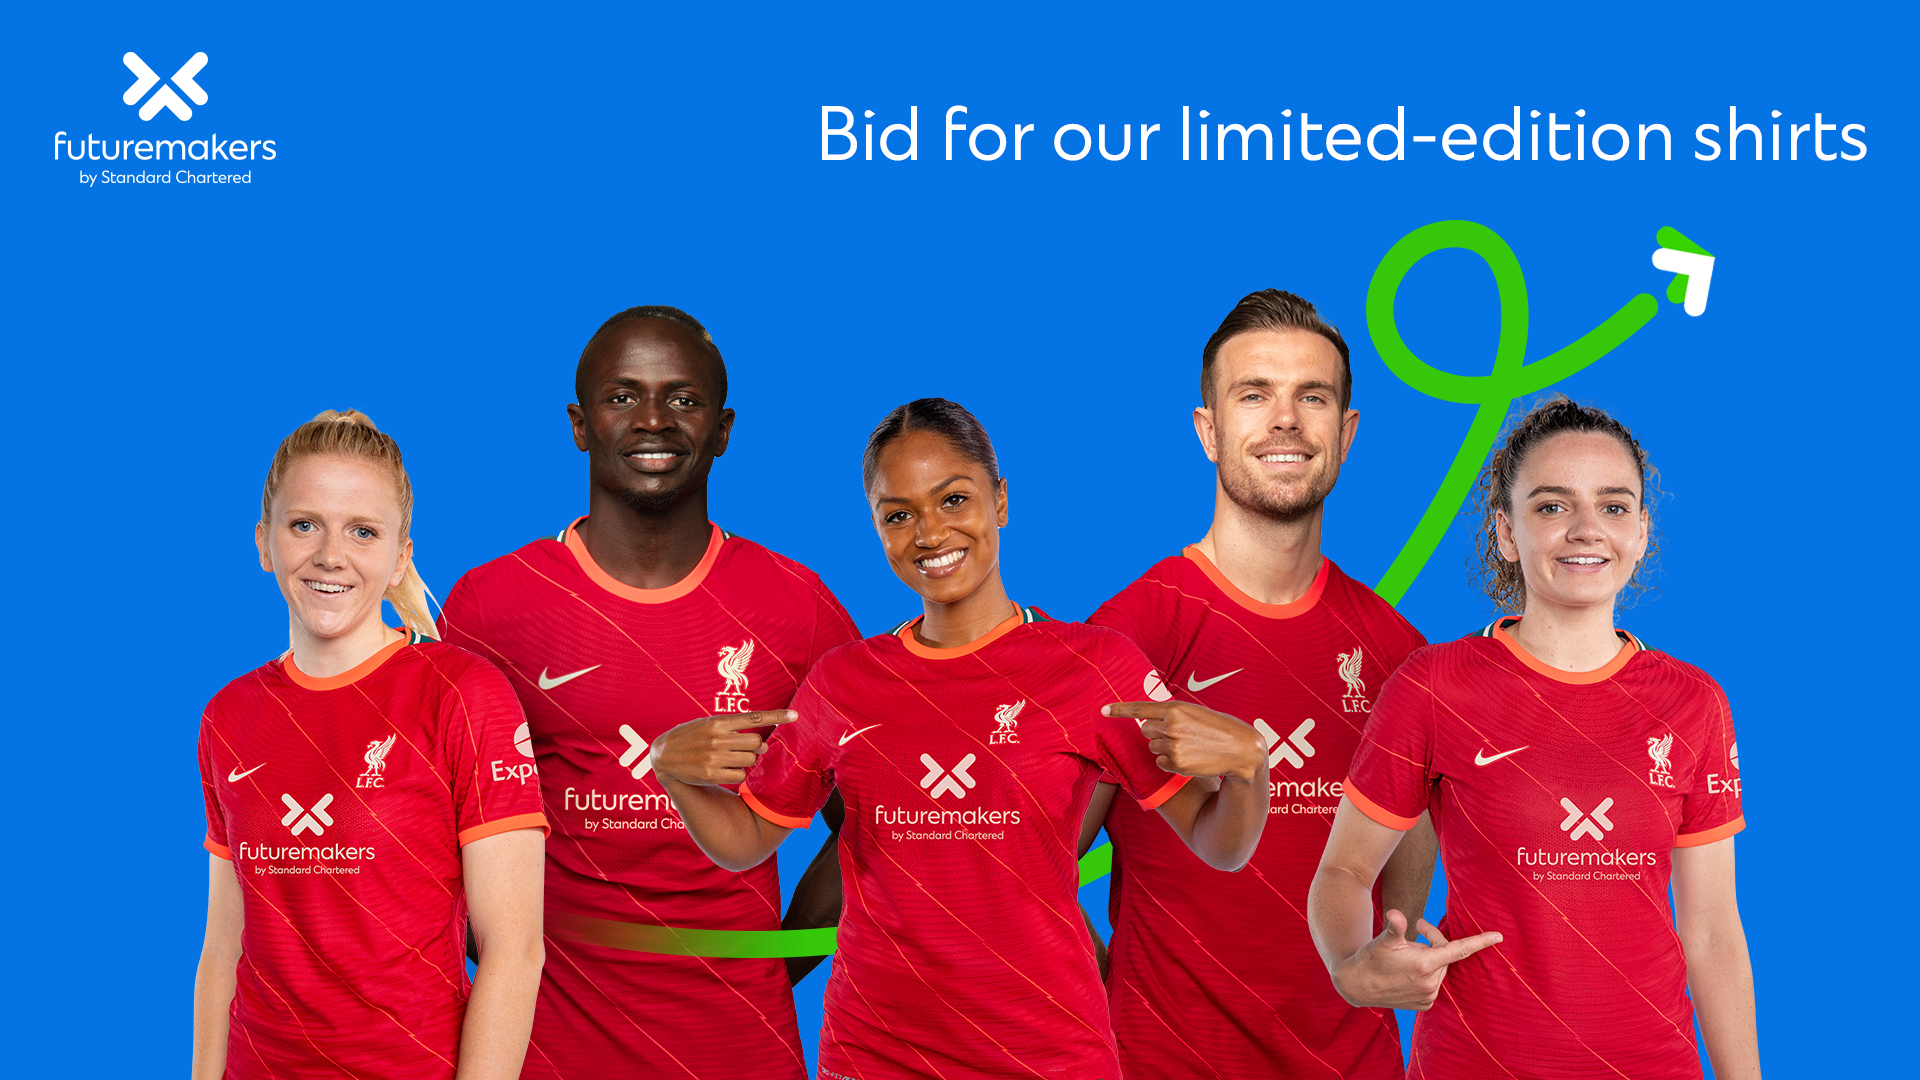 Standard Chartered to Auction Liverpool Futuremakers Jerseys for Charity